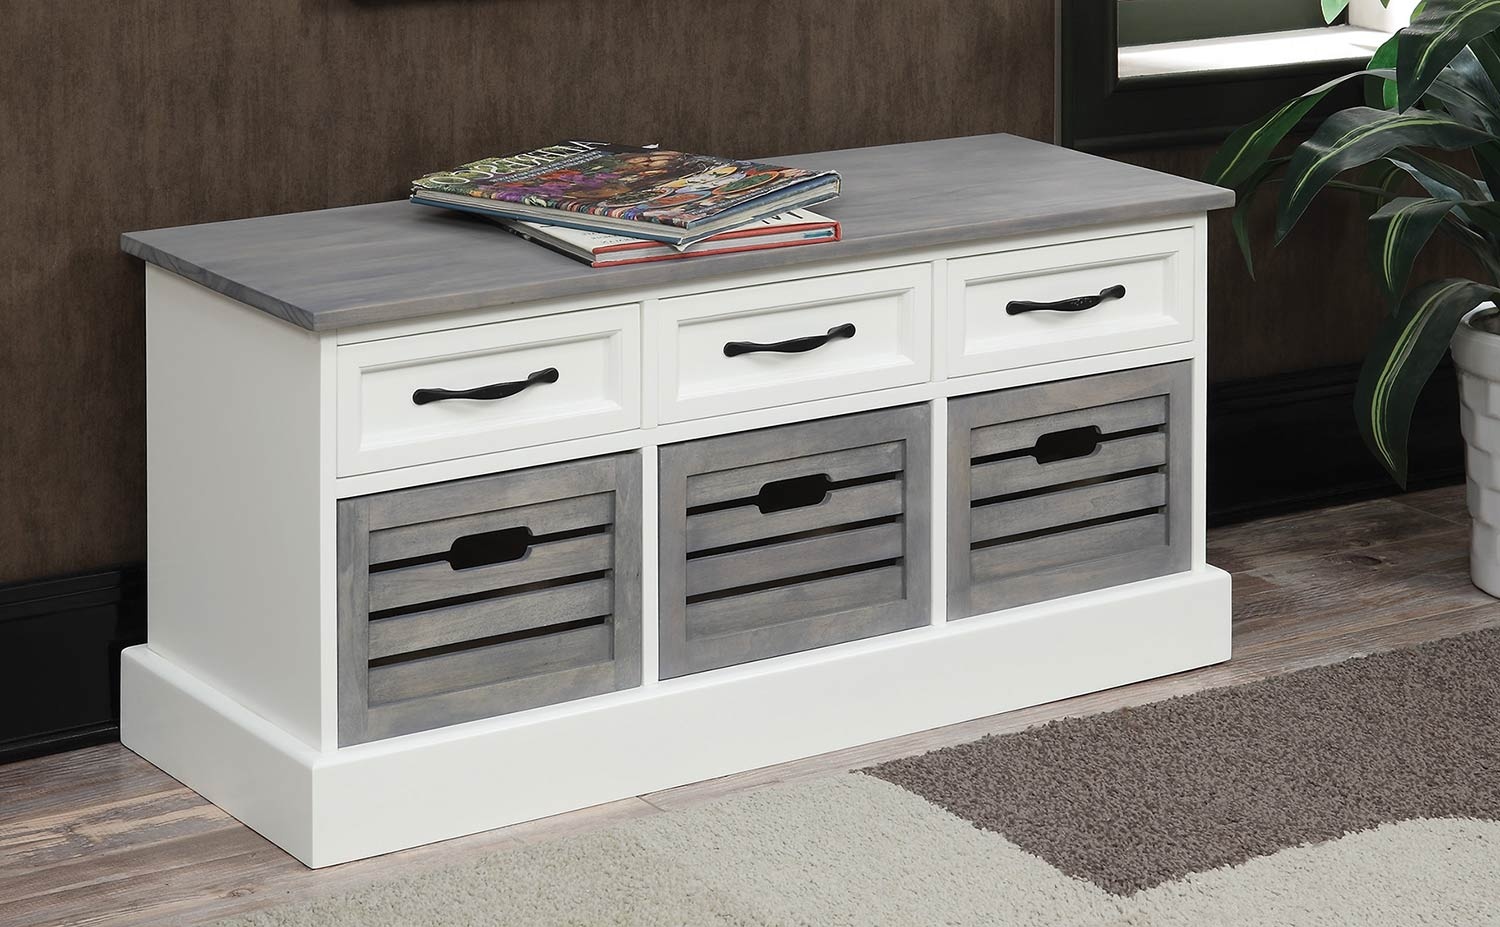 Coaster 501196 Storage Bench - Grey/White